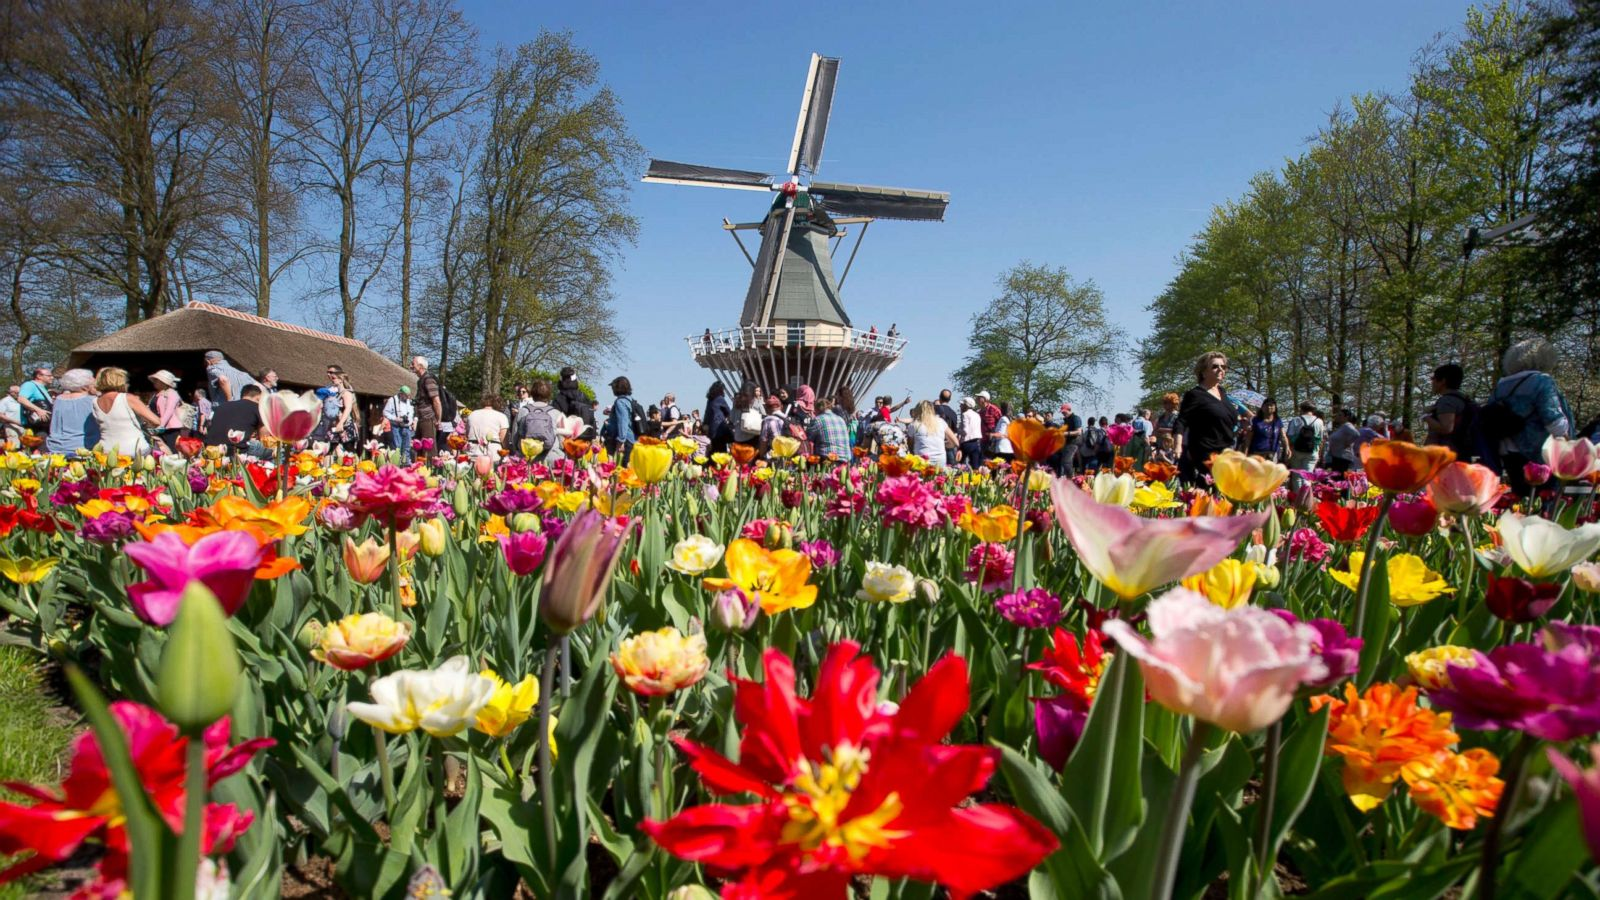 the 'garden of europe' is in full bloom in the netherlands - abc news